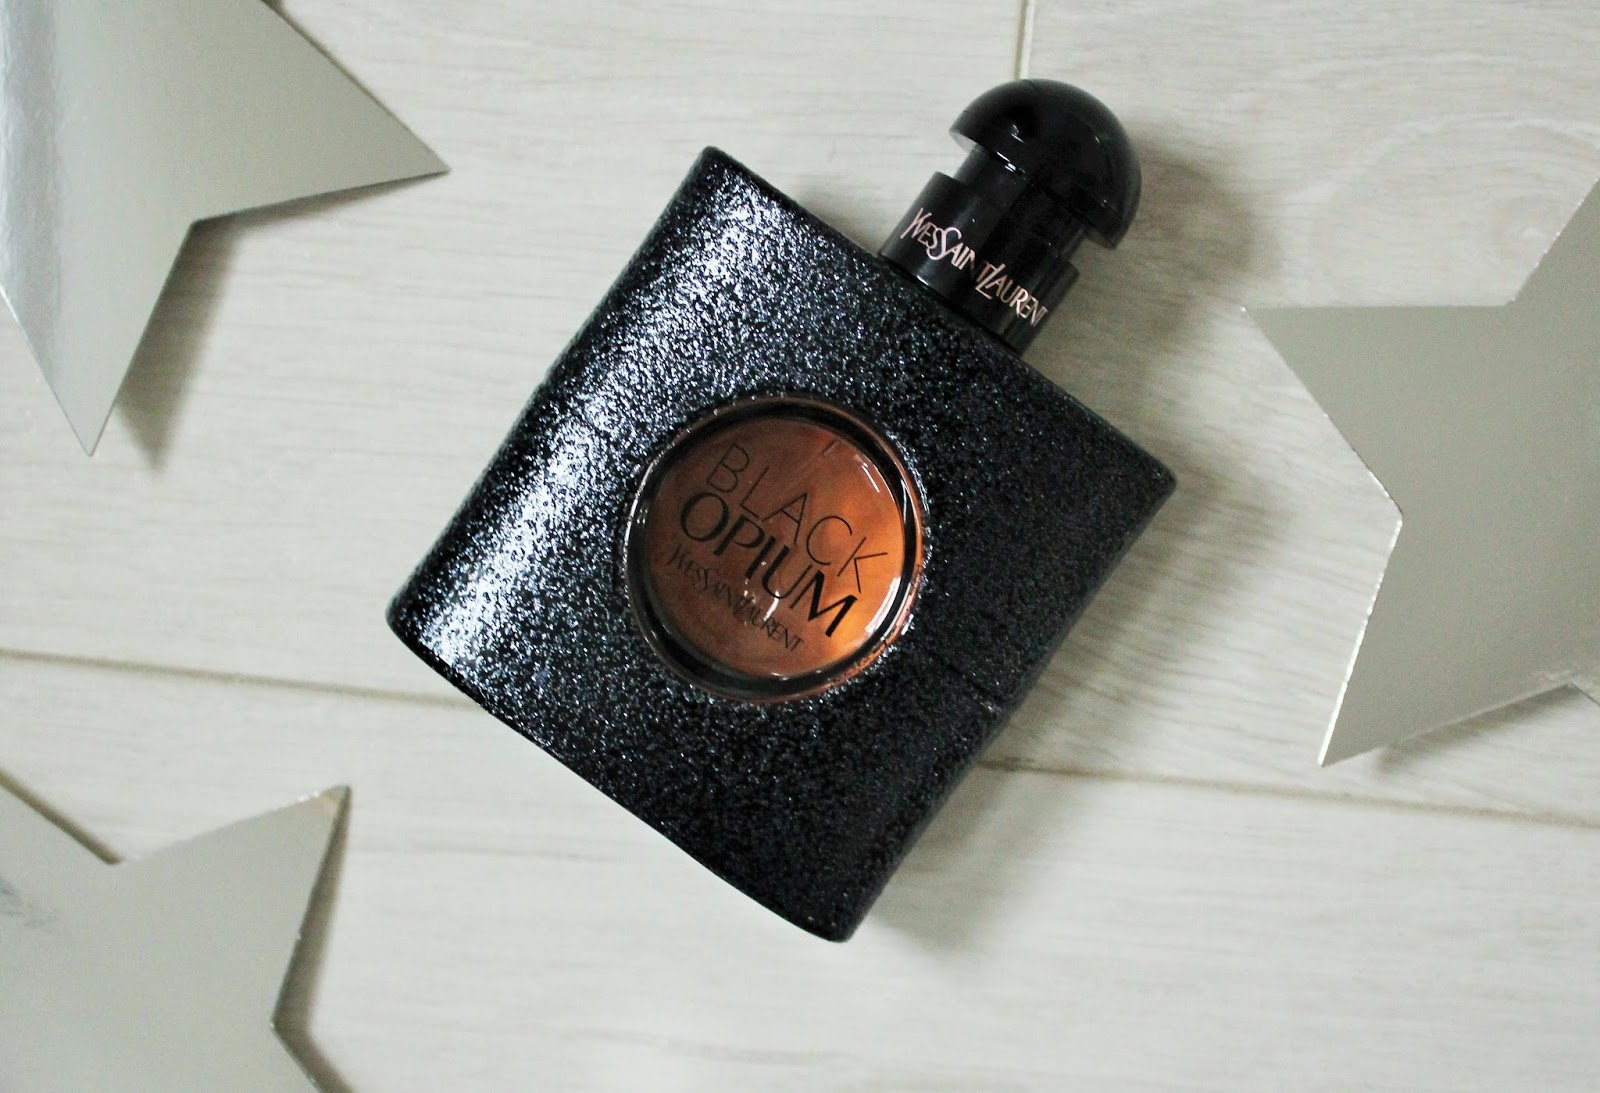 Winter Perfume 2 - Yves Saint Laurent Black Opium